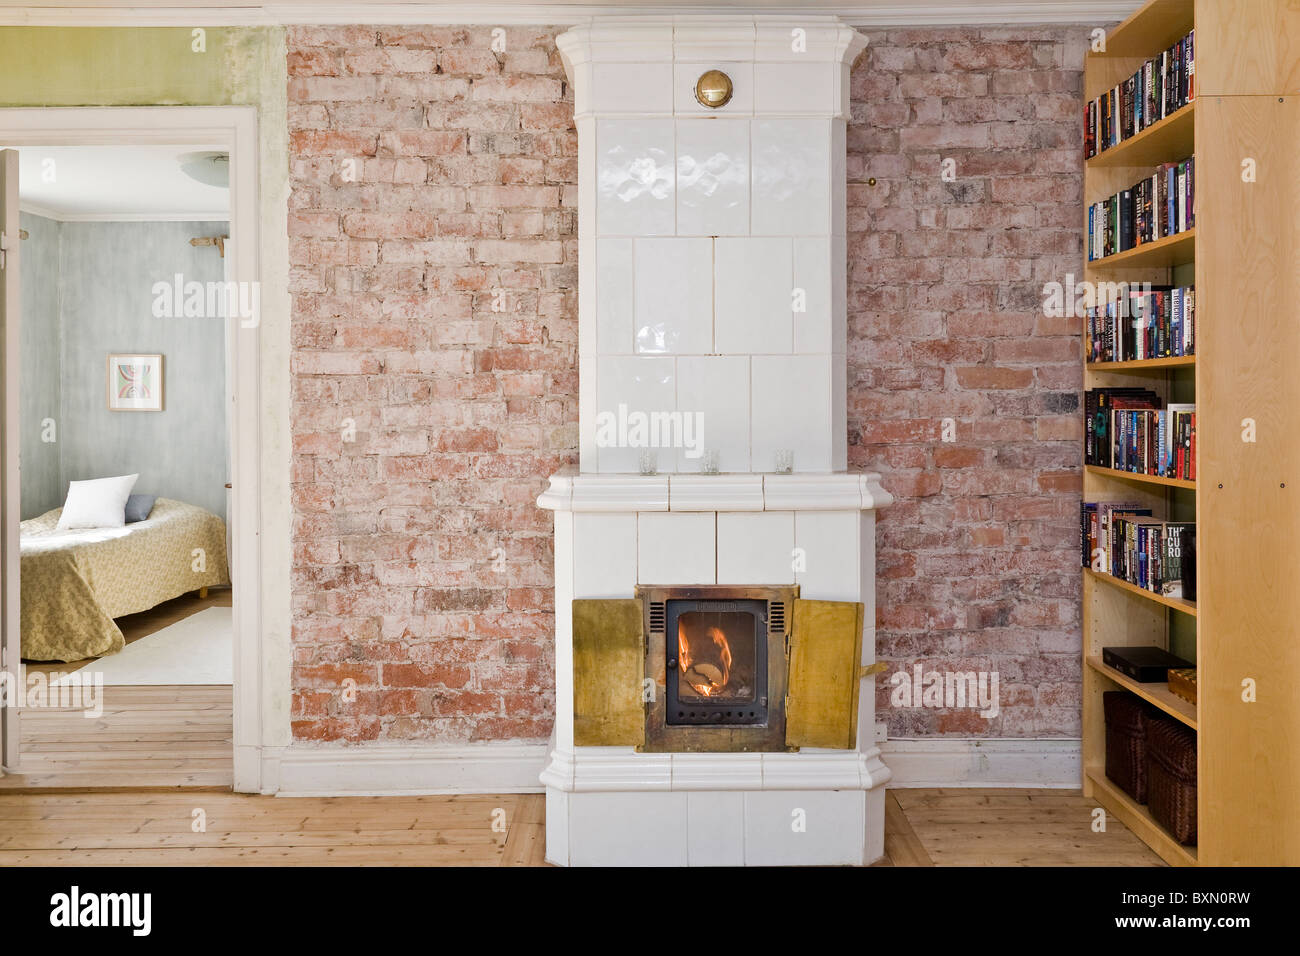 Modern ceramic tiled stove sweden stock photo 33653085 alamy modern ceramic tiled stove sweden dailygadgetfo Choice Image